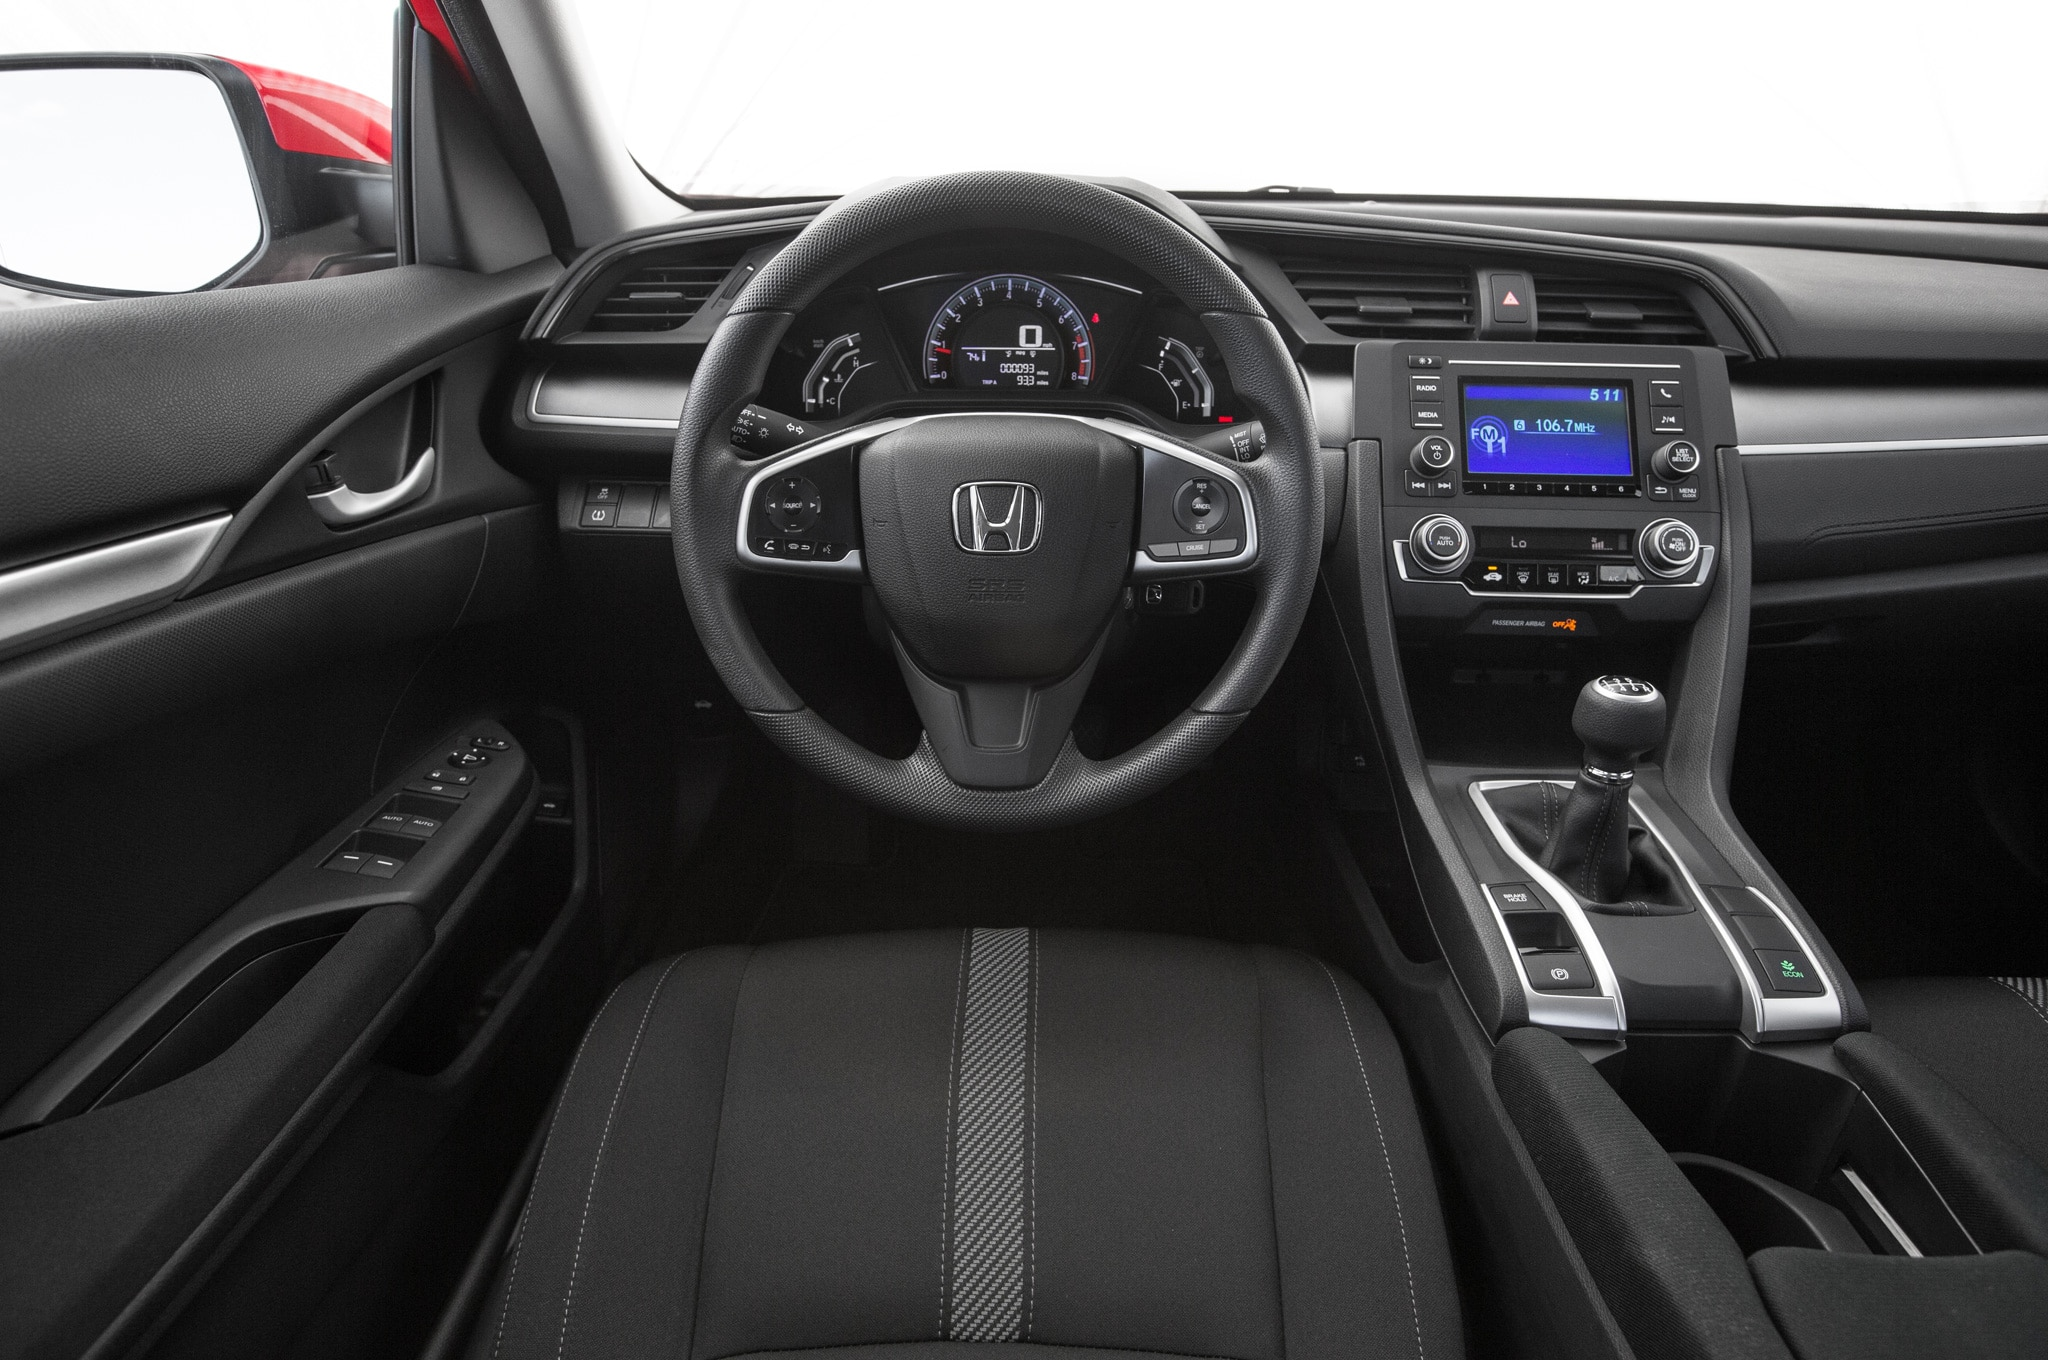 10th Generation Civic Exclusive Pakistan Launch - 2016 Honda Civic Sedan steering wheel and center stack